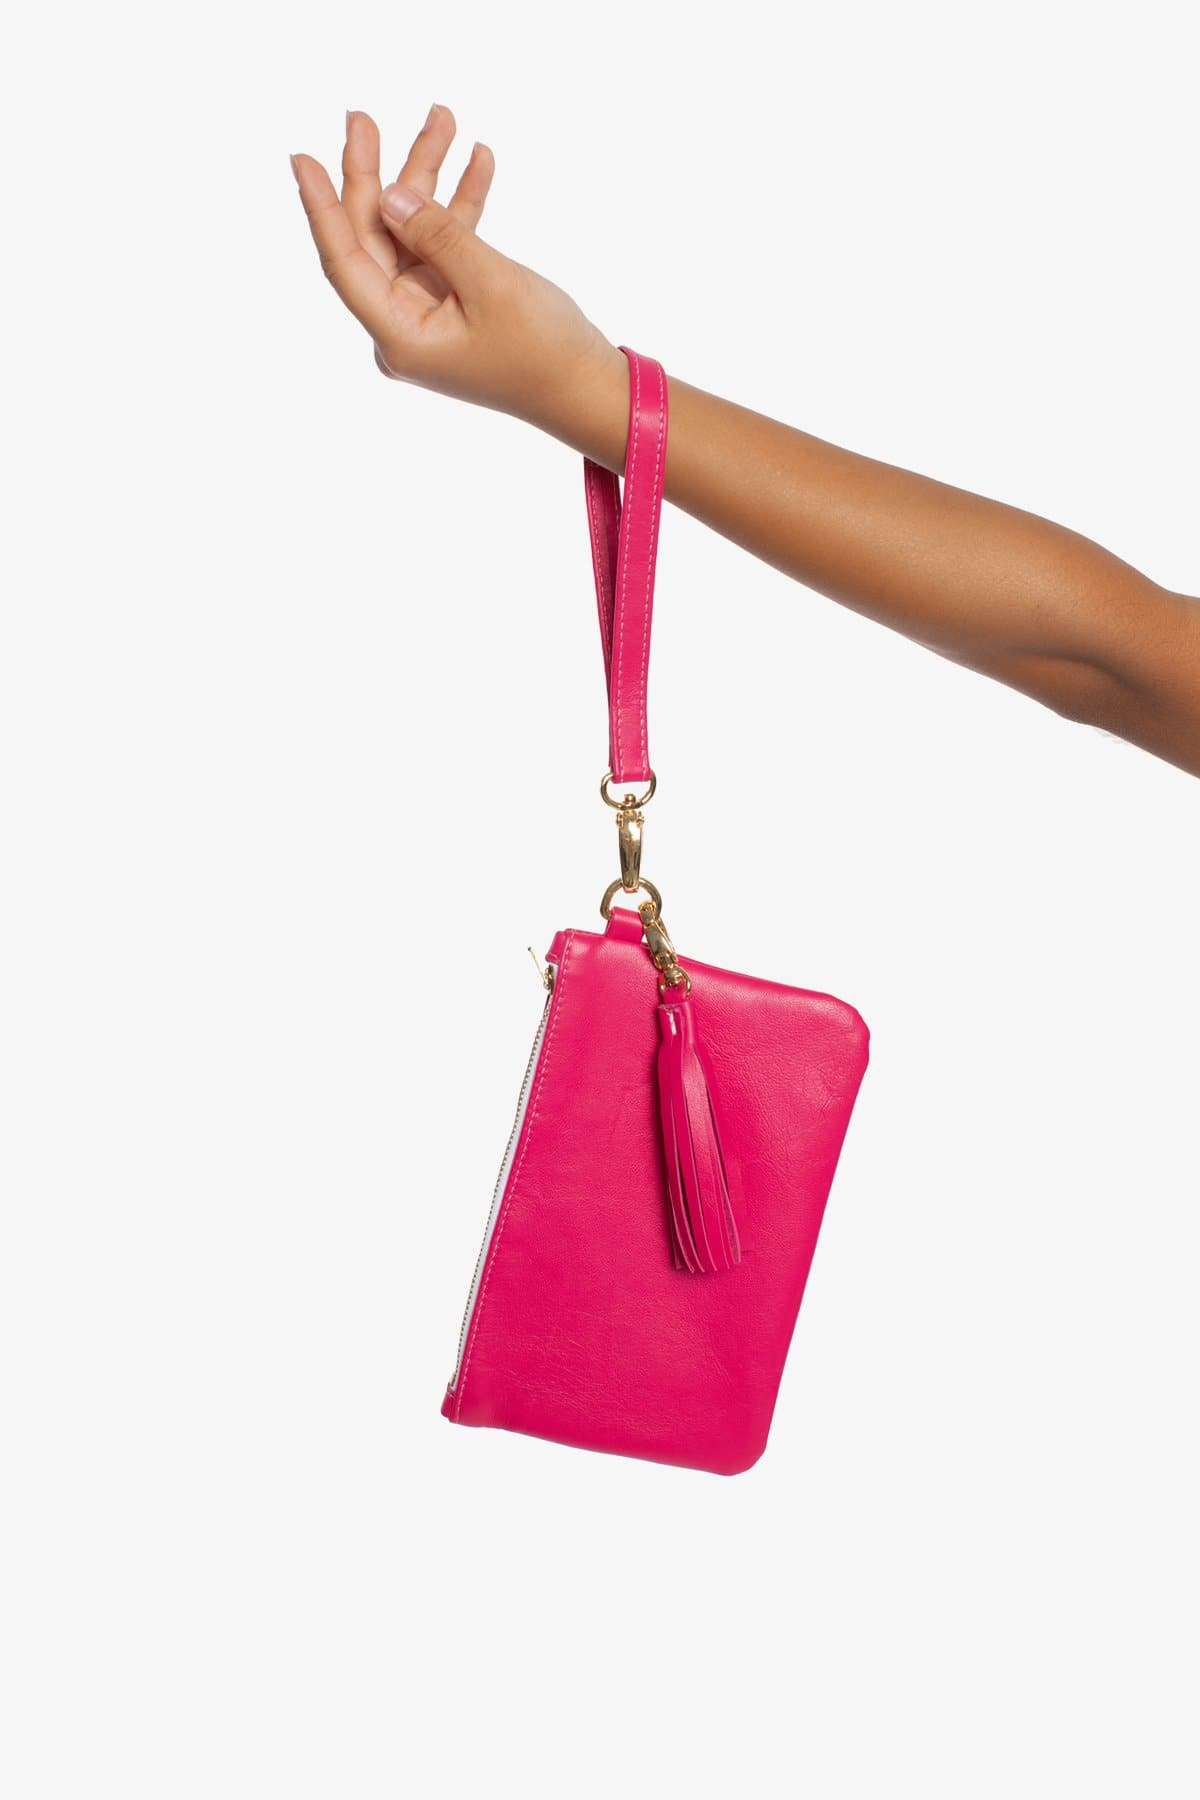 RLH3407 - The Leather Wristlet Zip Pouch